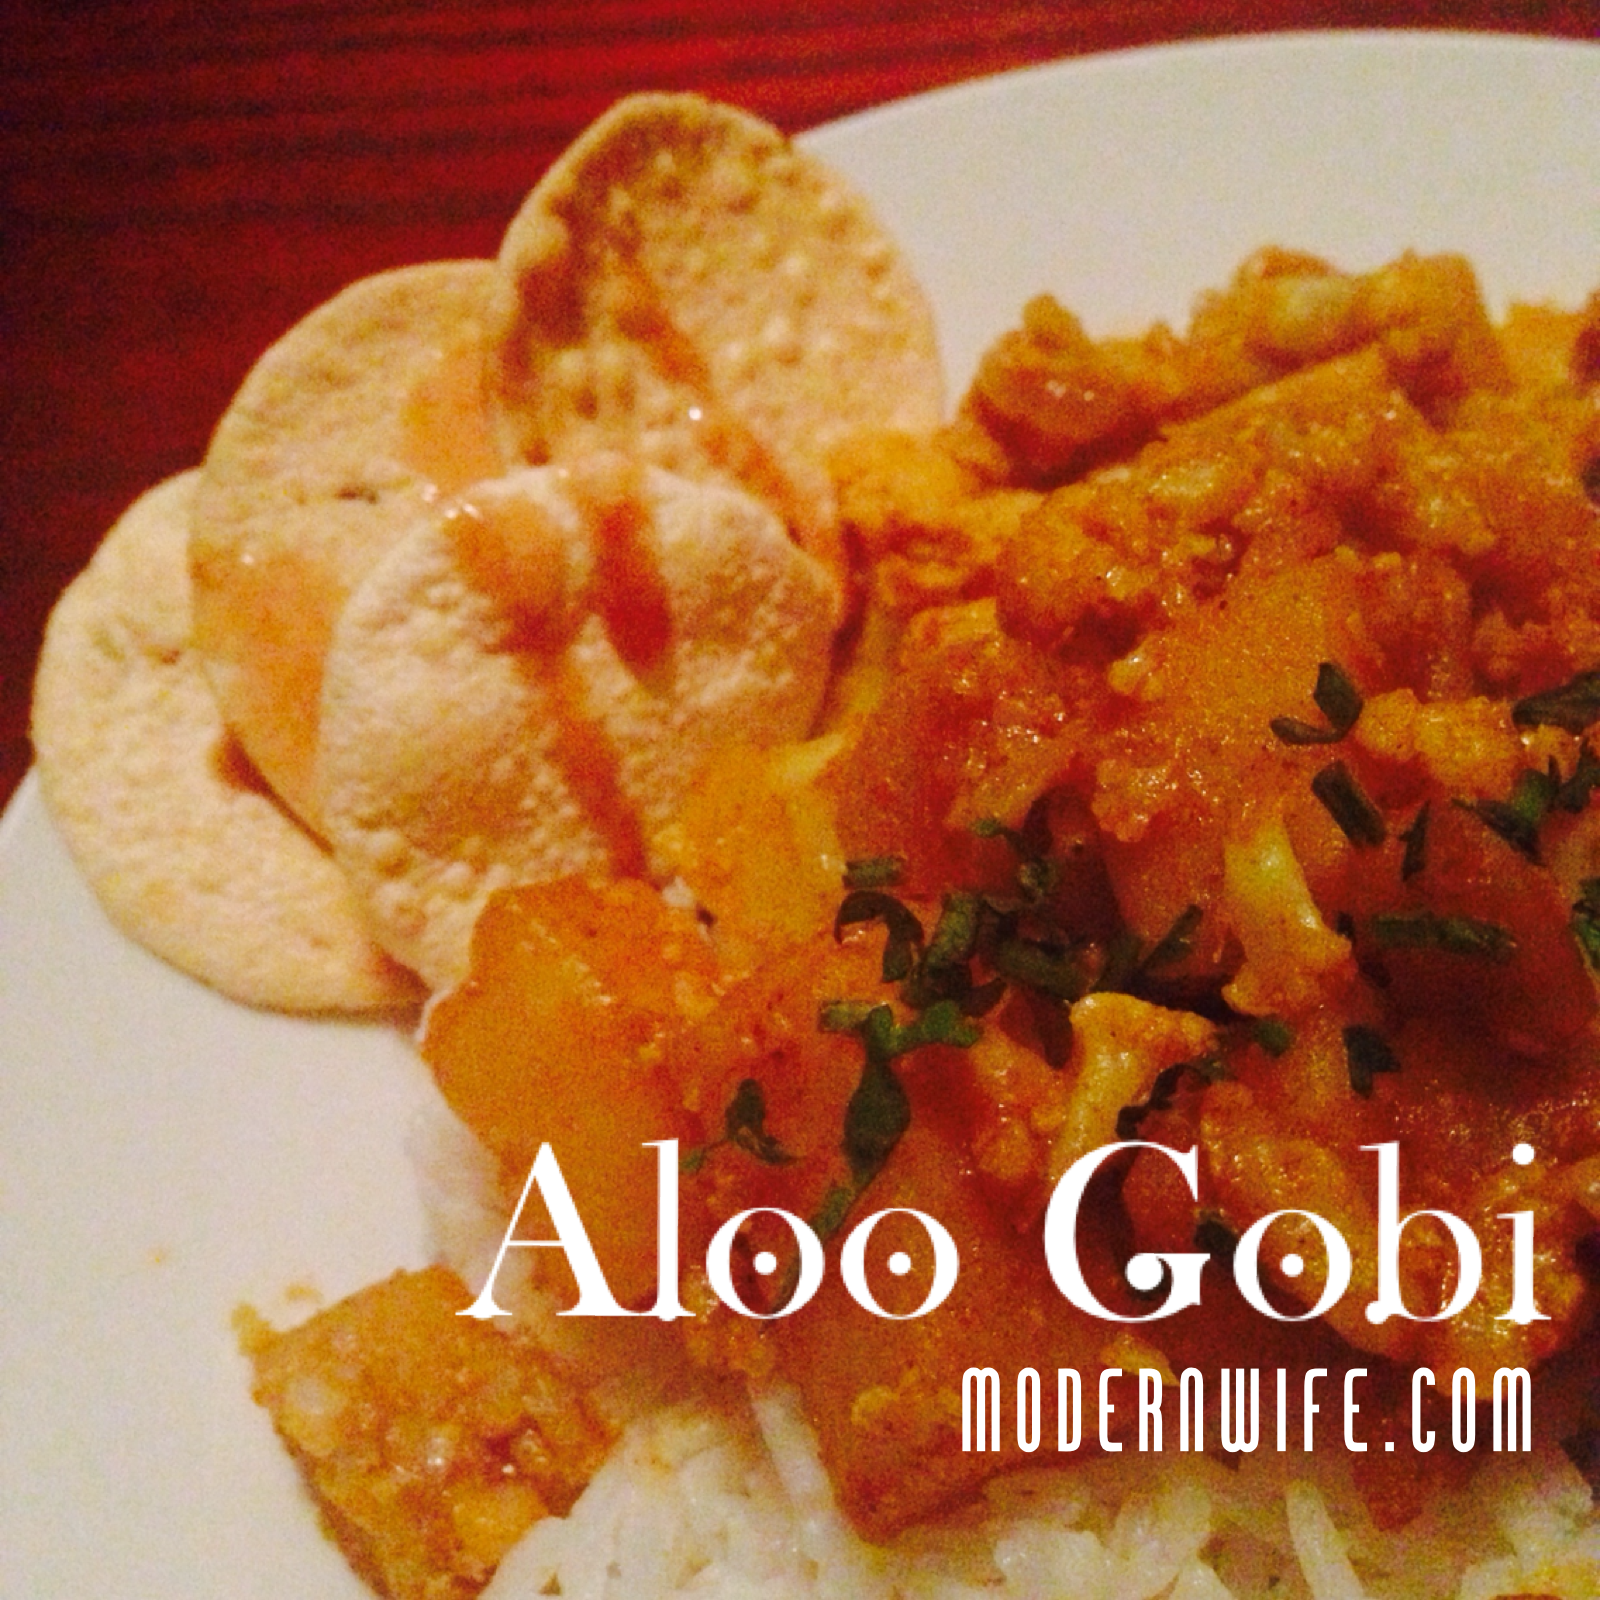 Aloo Gobi, Indian Potato and Cauliflower Dish